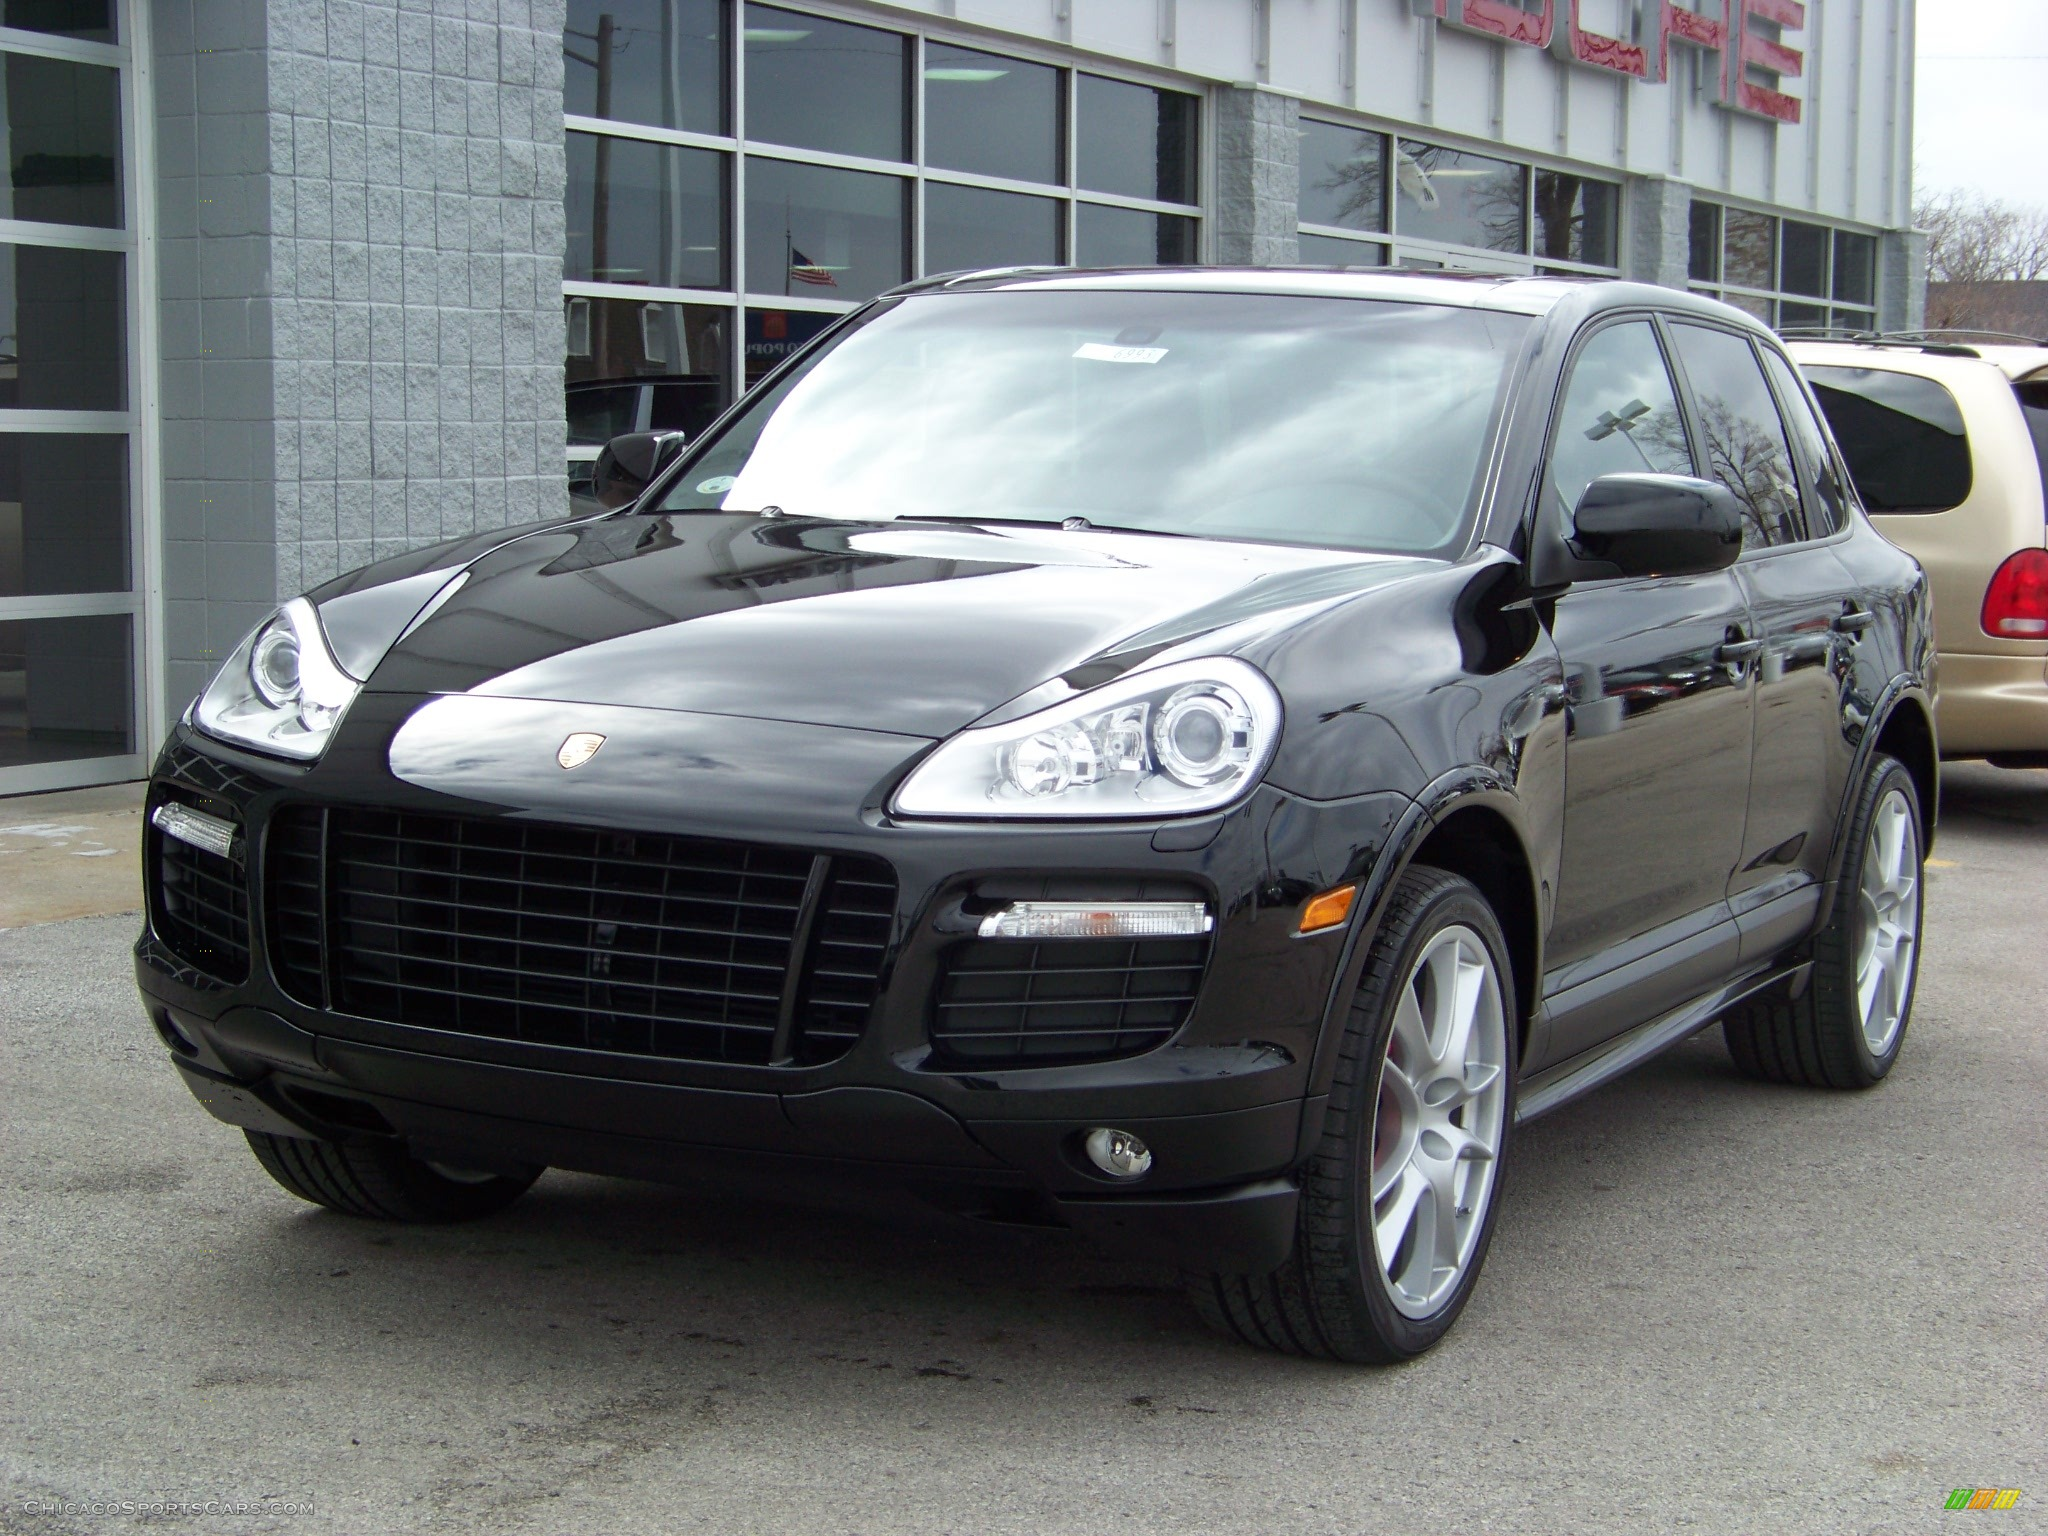 2008 porsche cayenne gts in black a70775 cars for sale in illinois. Black Bedroom Furniture Sets. Home Design Ideas